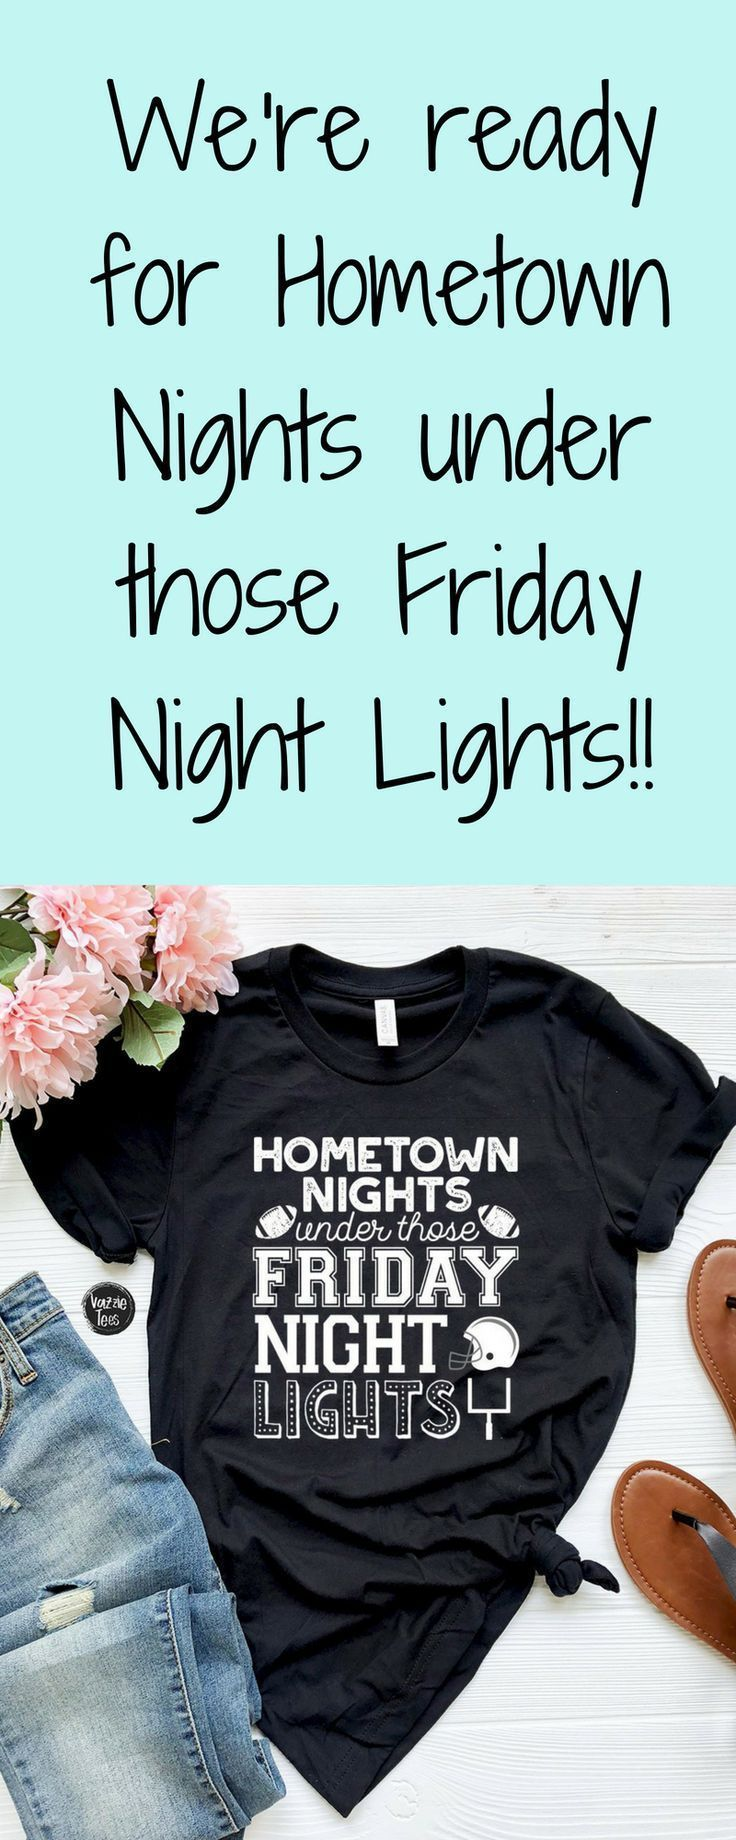 Hometown Nights under those Stadium Lights - Adult Tee #fridaynightlights We're ready for hometown nights under those Friday night lights! #vazzietees #hometownnights #football #footballtees #fridaynightlights Hometown Nights under those Stadium Lights - Adult Tee #fridaynightlights We're ready for hometown nights under those Friday night lights! #vazzietees #hometownnights #football #footballtees #fridaynightlights Hometown Nights under those Stadium Lights - Adult Tee #fridaynightlights We're #fridaynightlights